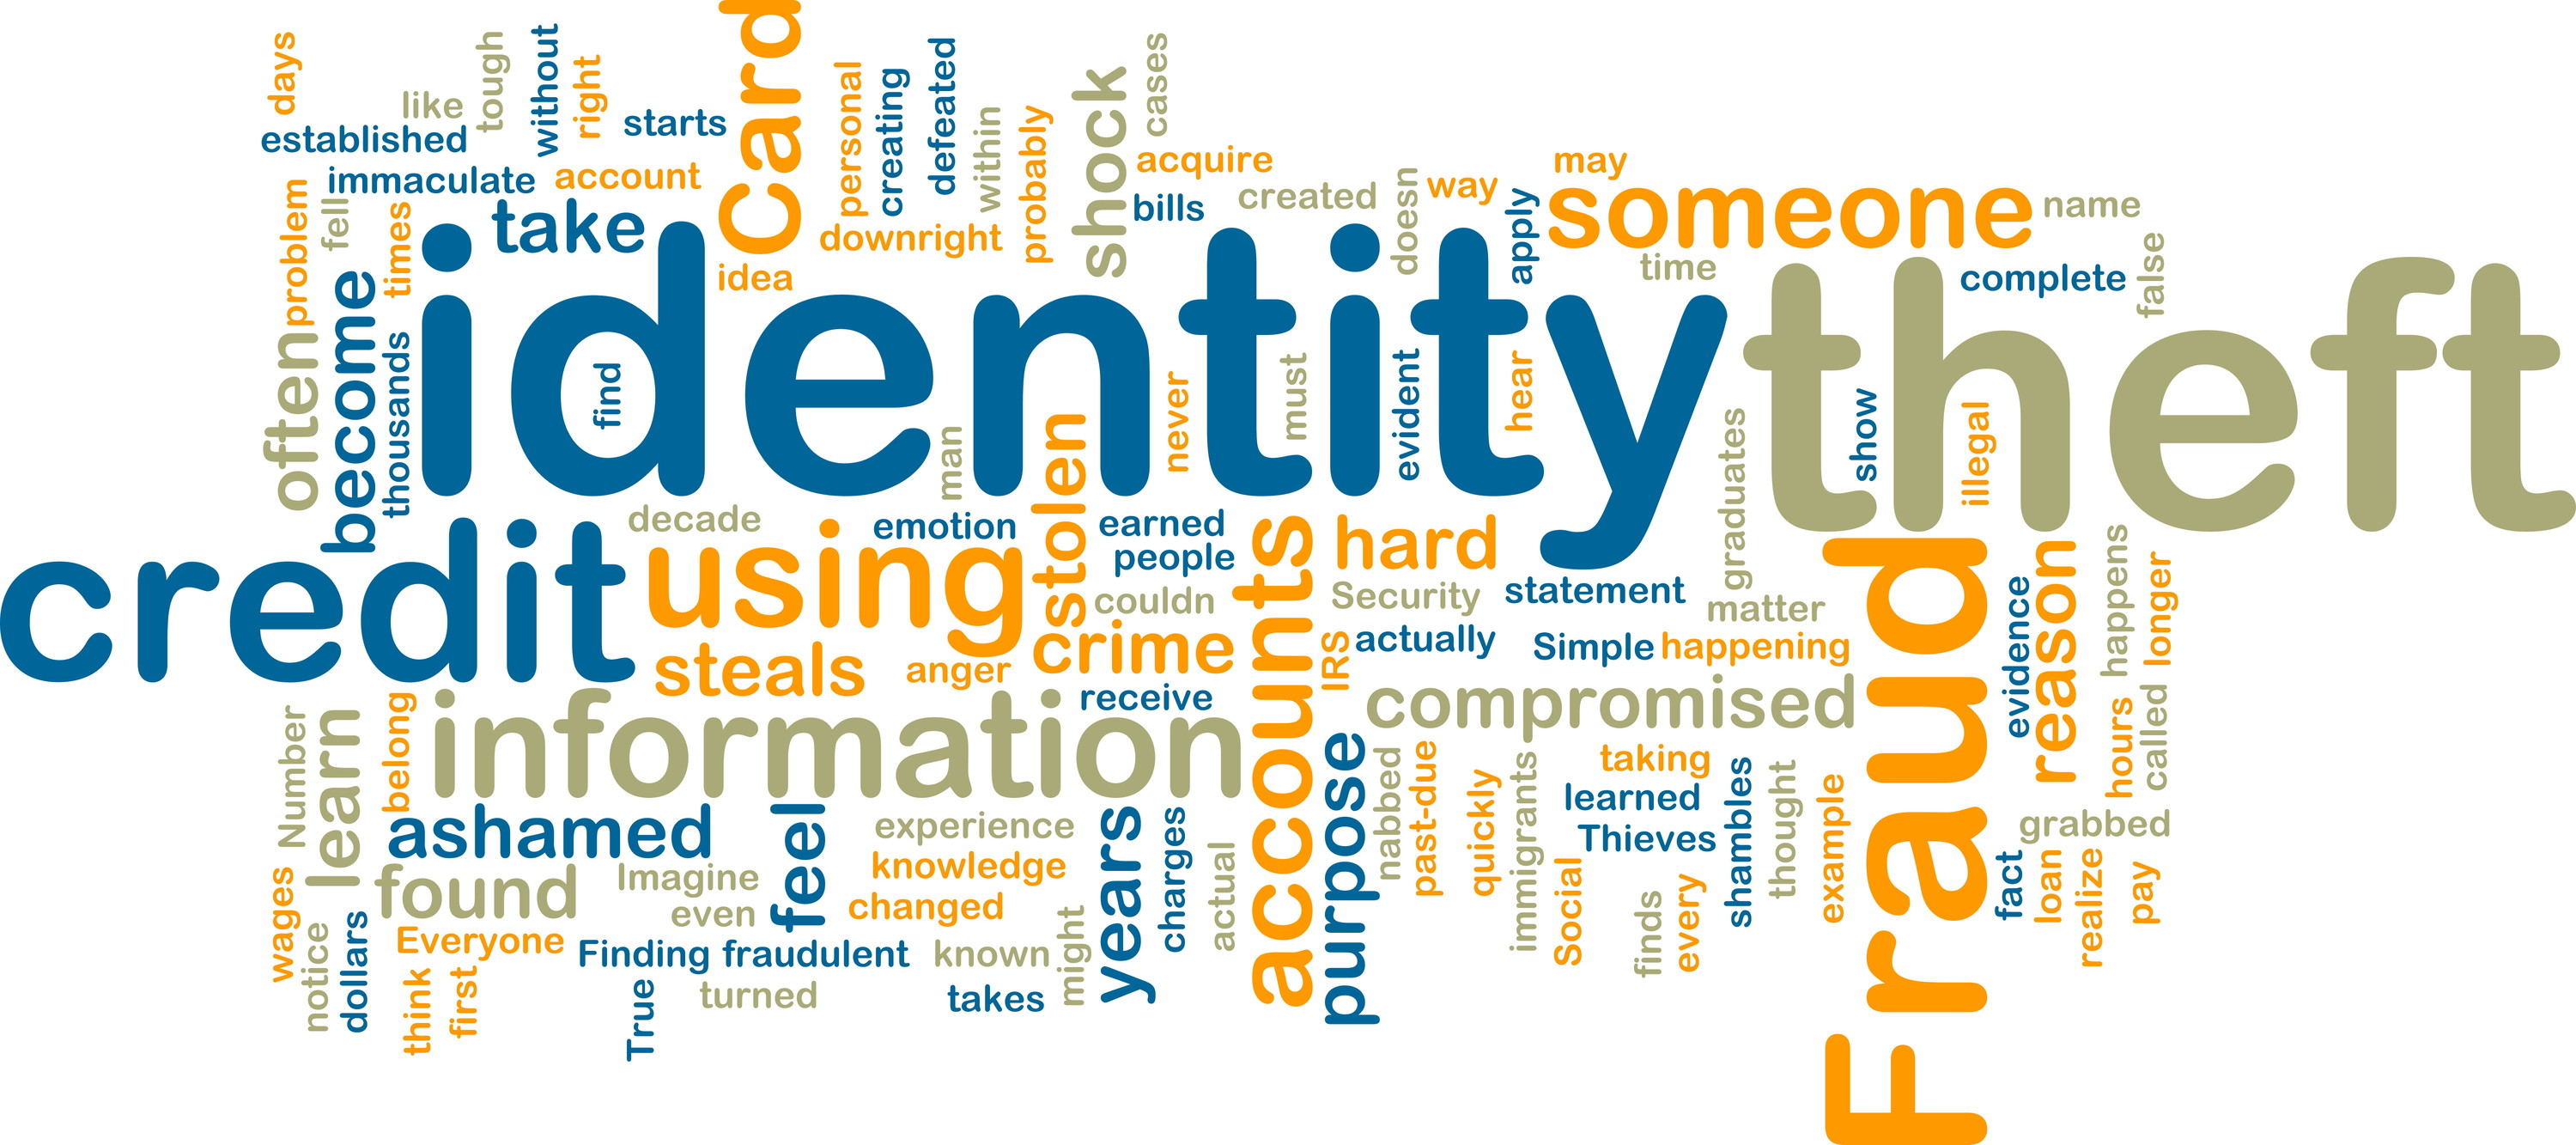 theories and trends in identity theft The work has first defined identity theft as basically the act of impersonating people so as to gain access to their financial statements on the other hand, some theories and concepts explain the origin of certain behaviours and acts like identity theft.